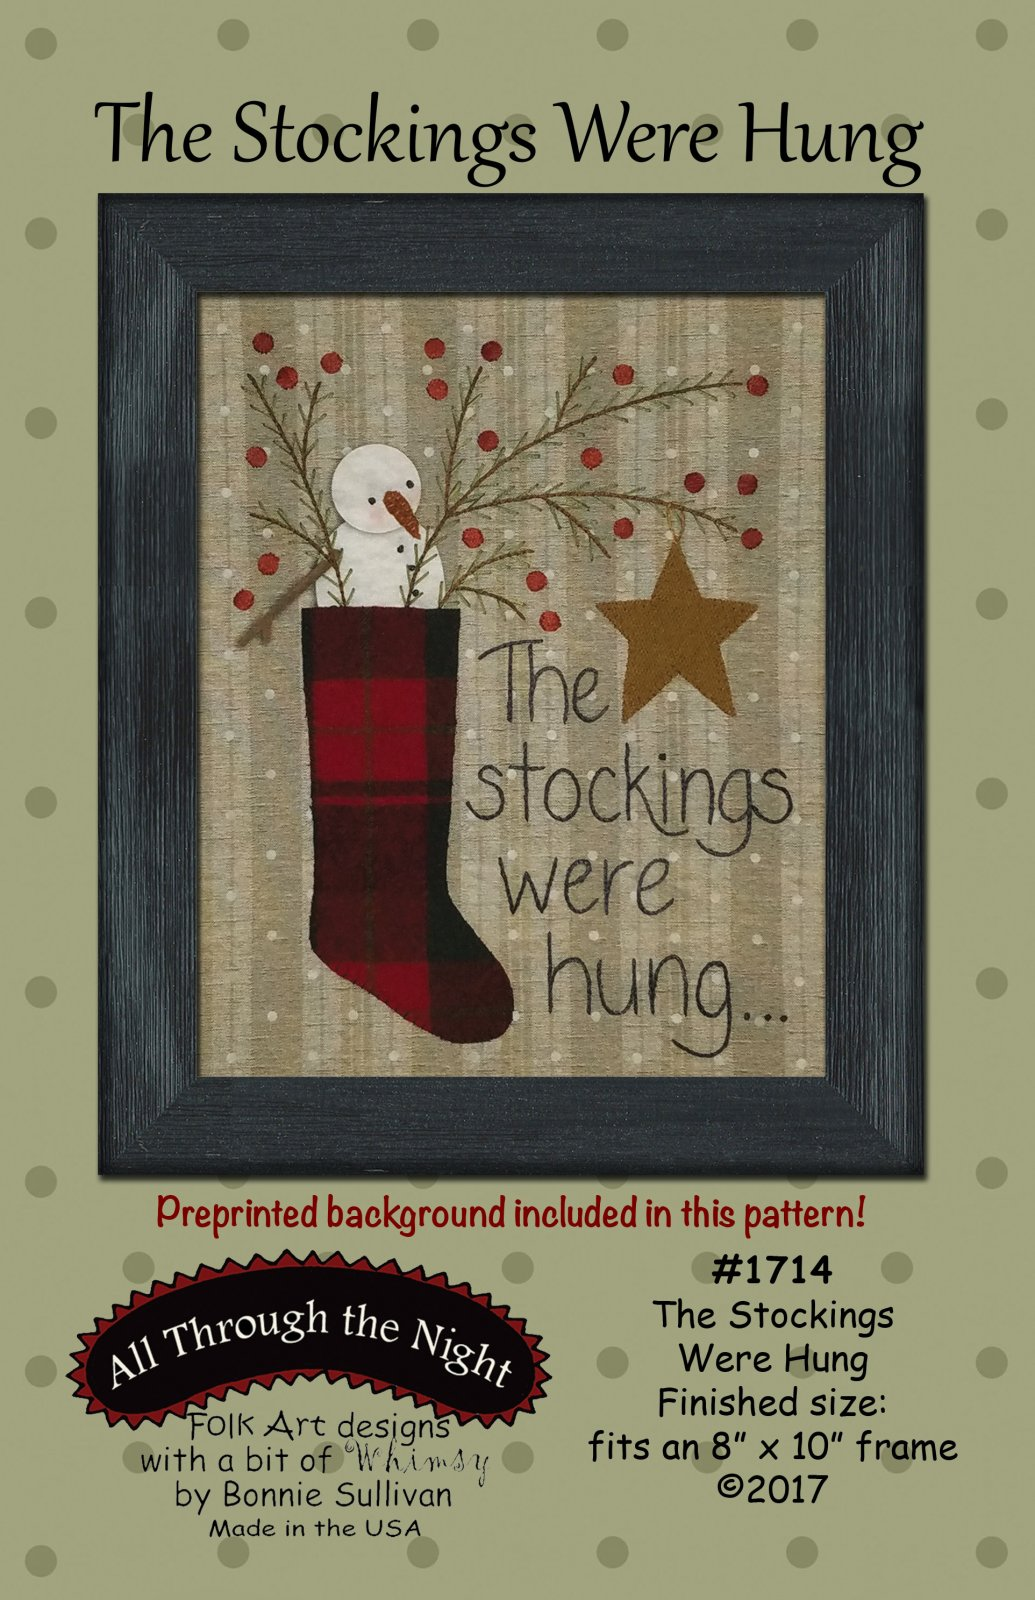 1714 The Stockings Were Hung